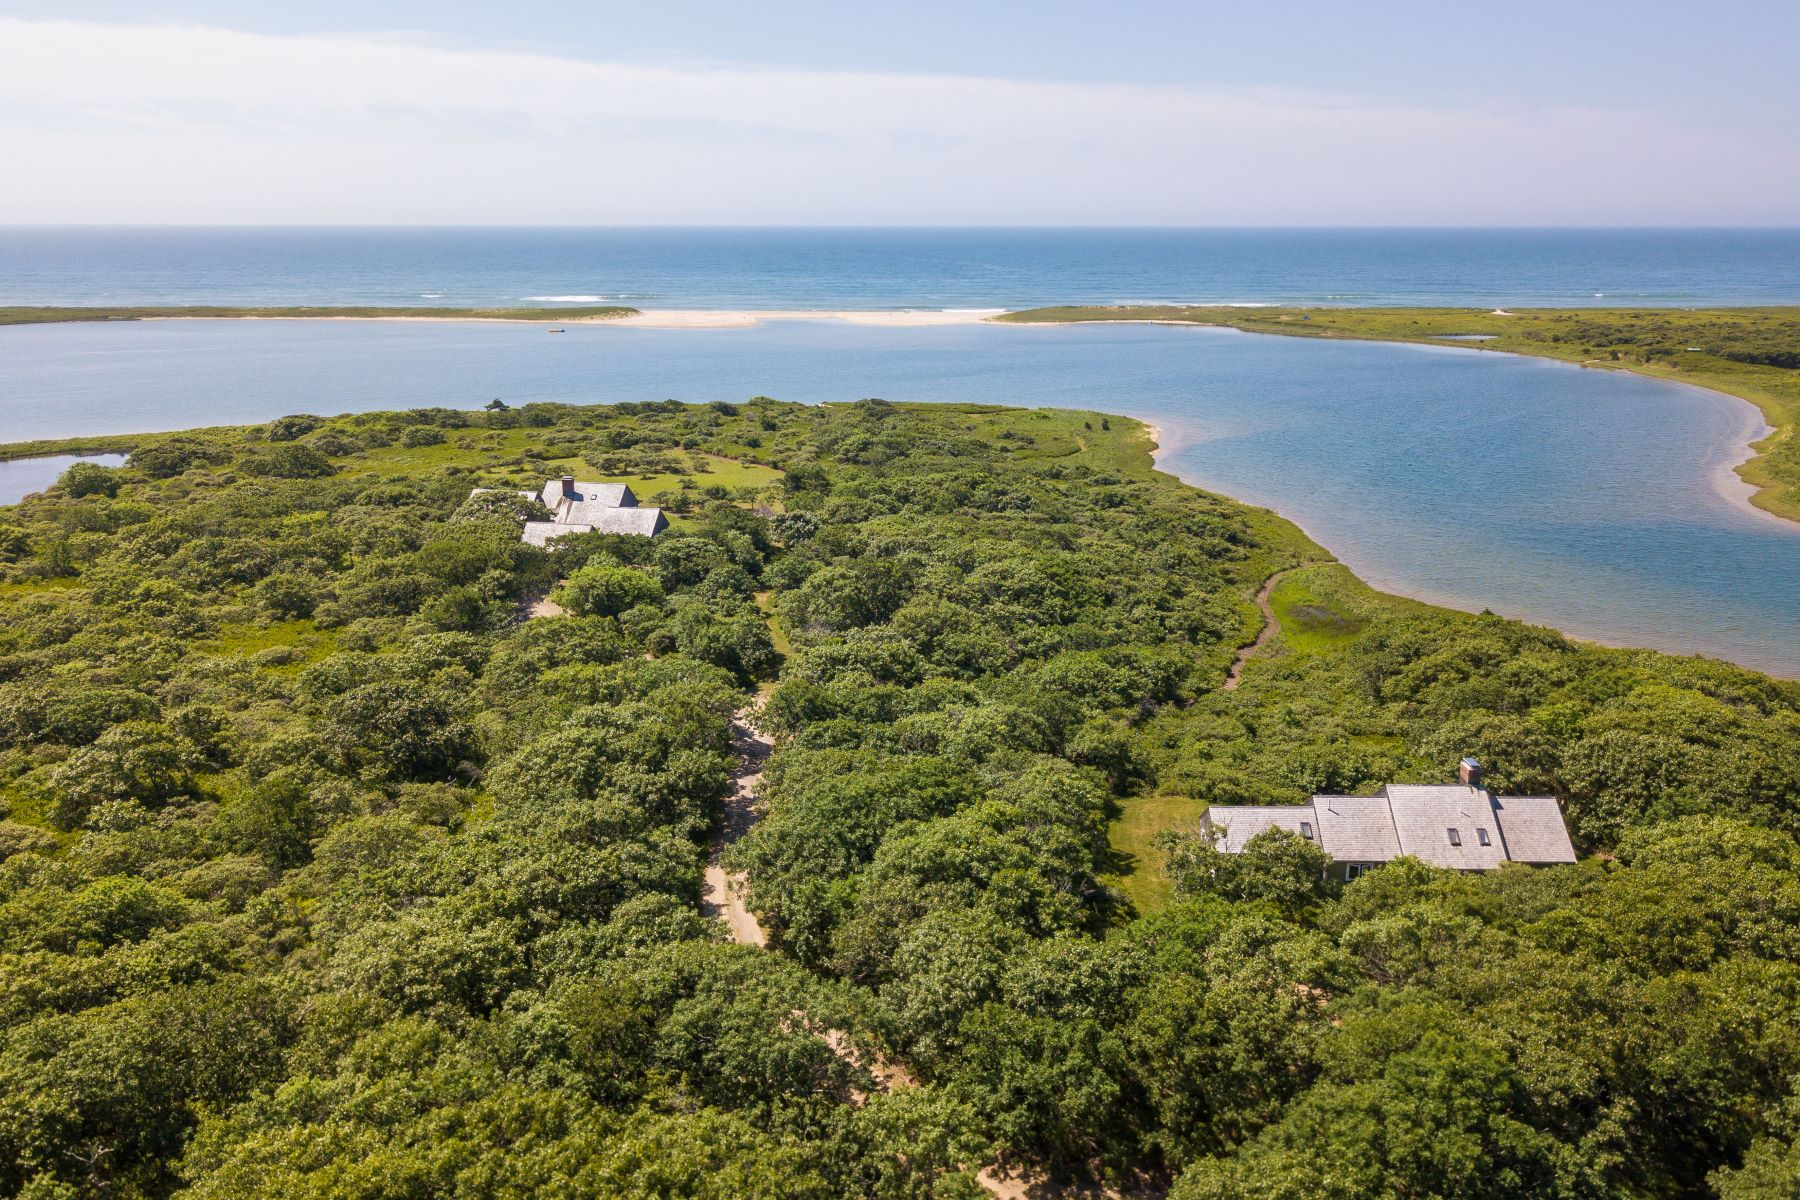 Maison unifamiliale pour l Vente à Extraordinary Property on Oyster Pond 50 Oyster Watcha Road, Edgartown, Massachusetts, 02539 États-Unis